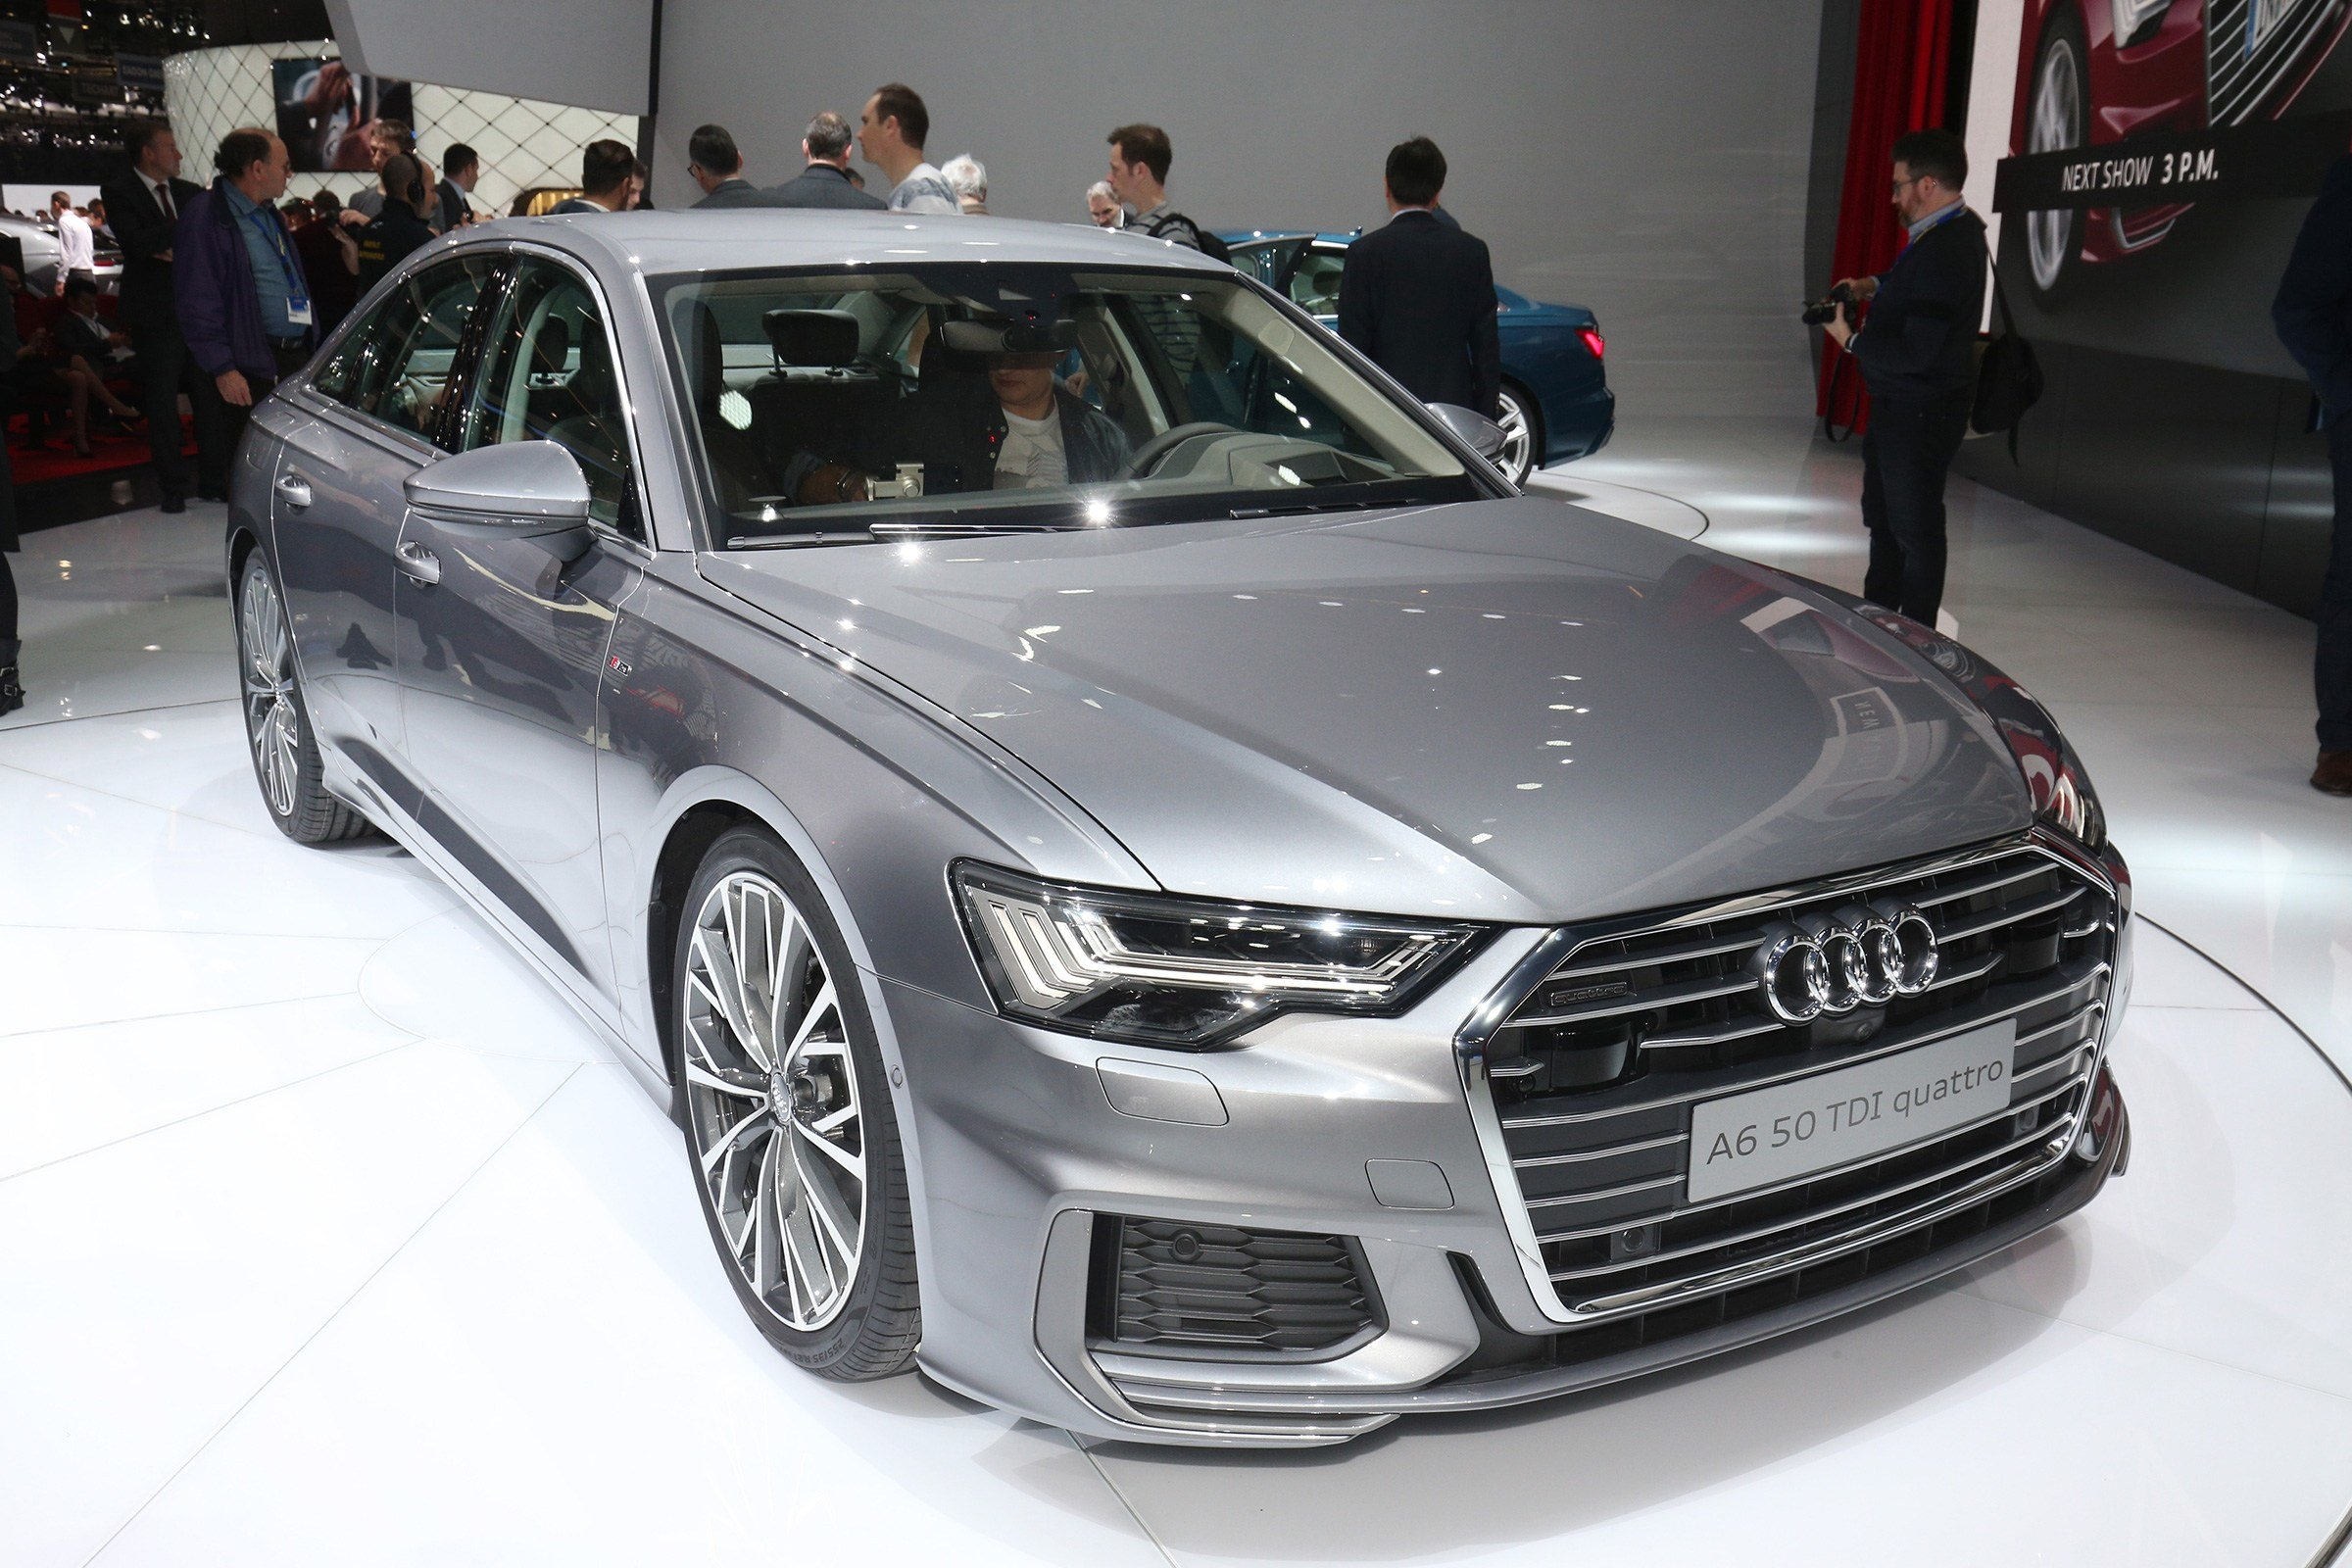 Latest 2018 Audi A6 Makes A New Bid For Executive Car Dominance Evo Free Download